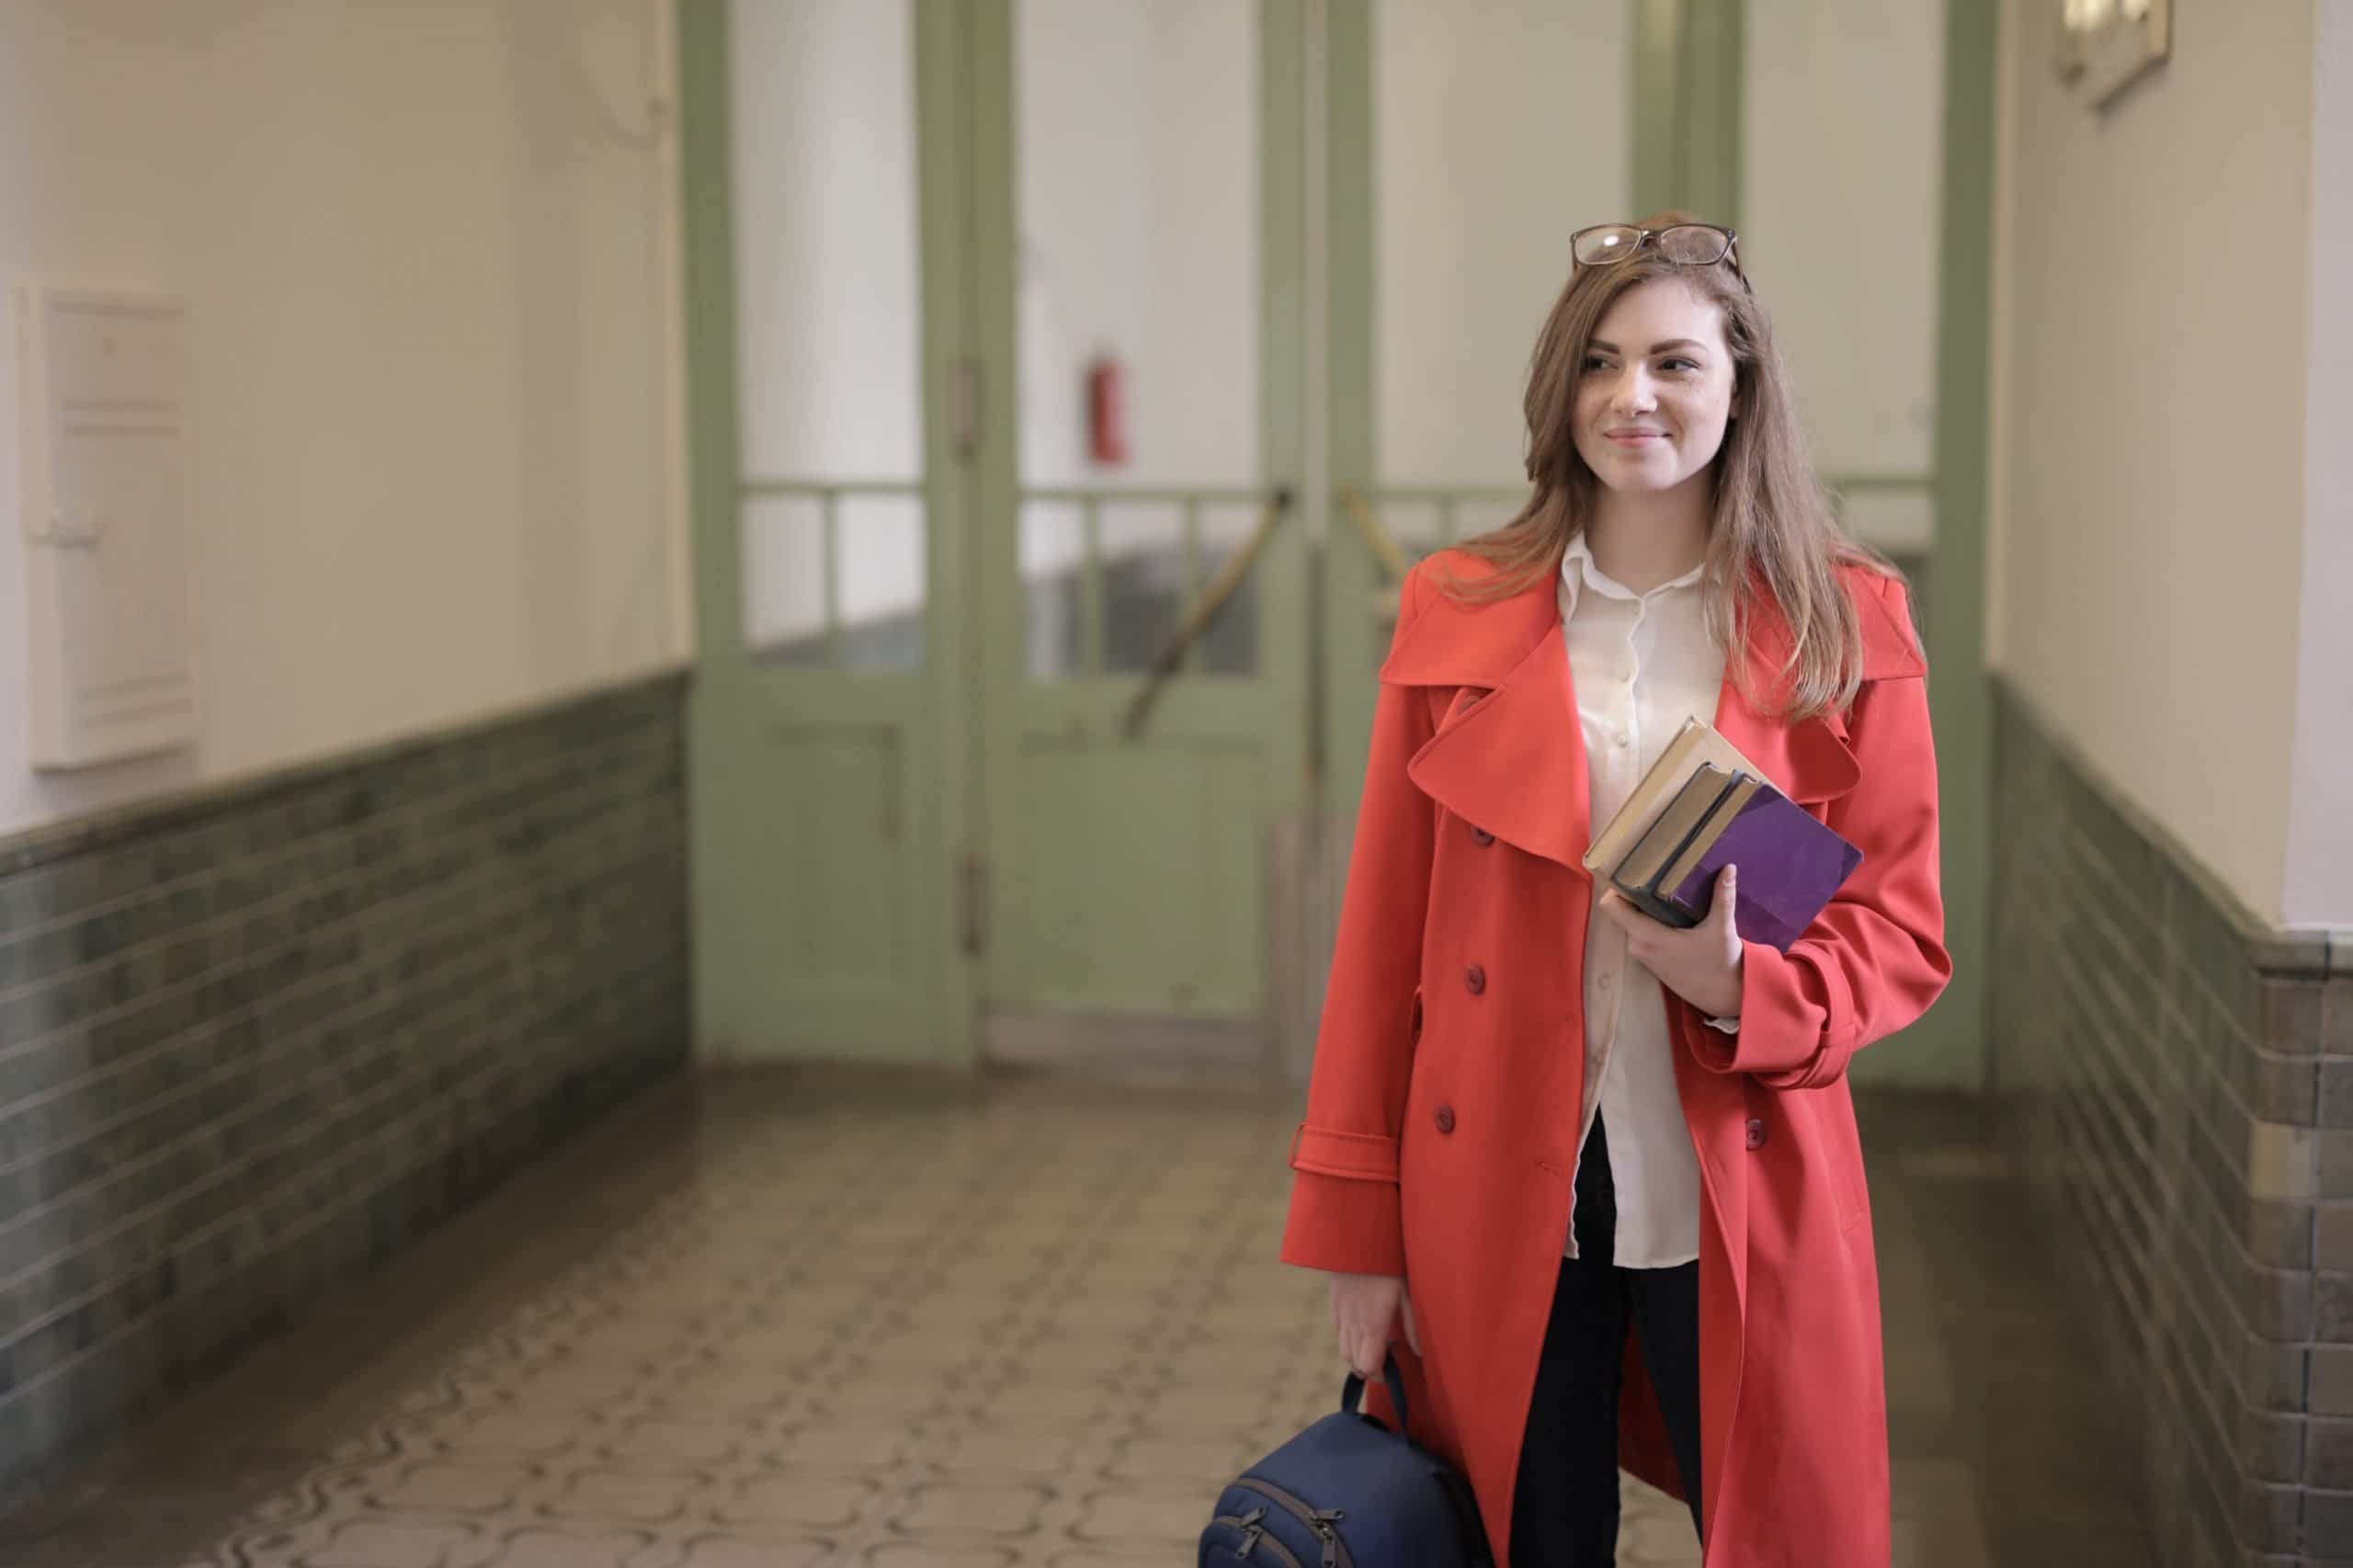 A girl in a red coat